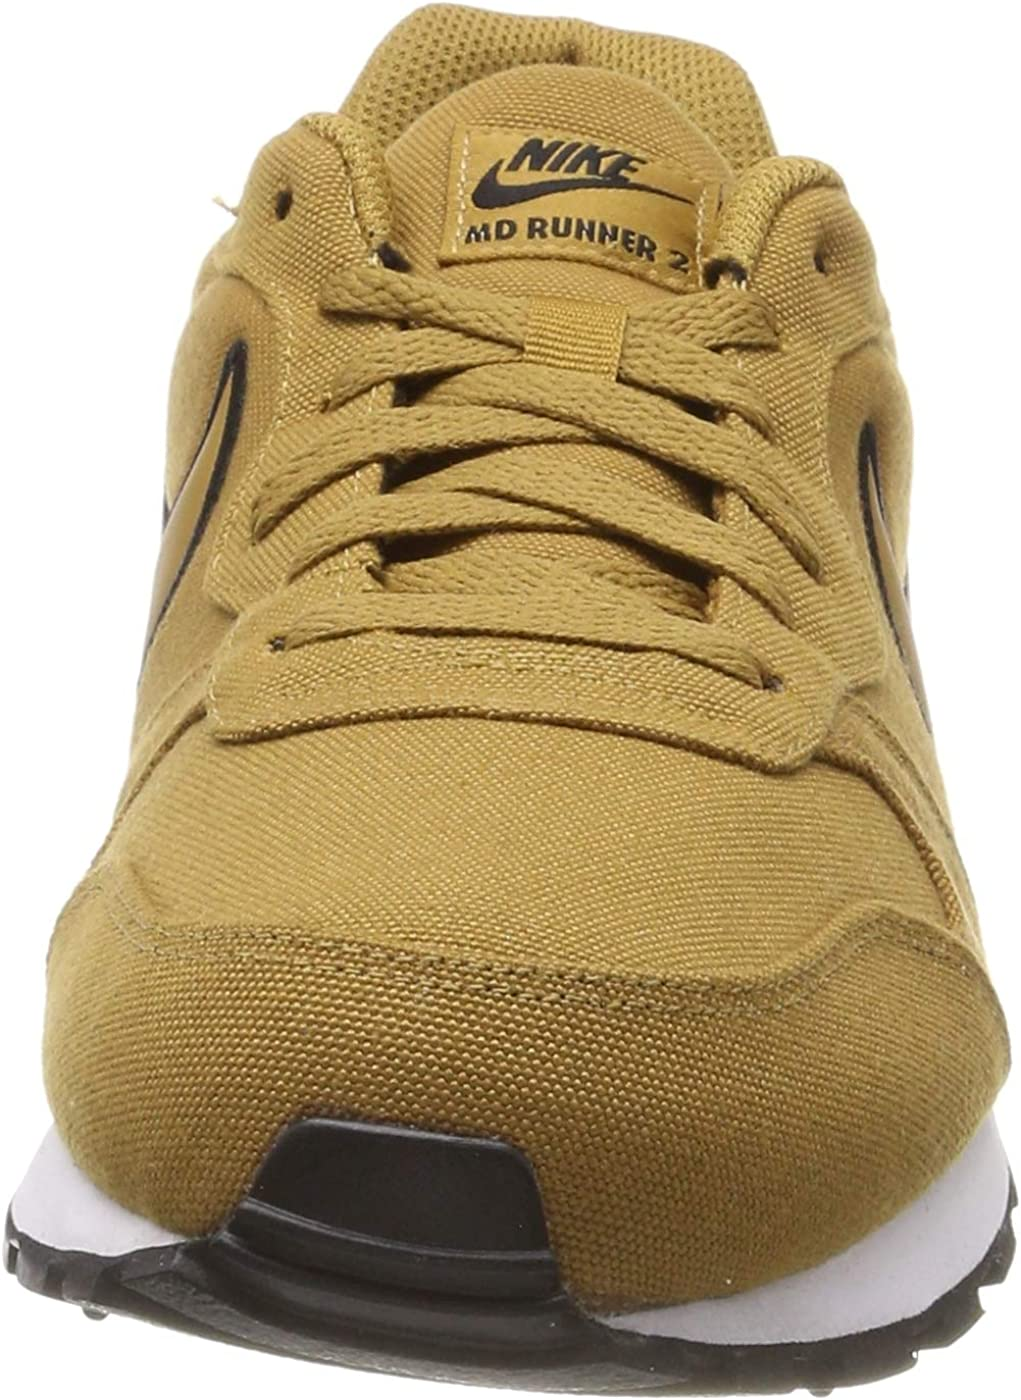 Nike MD Runner 2 Se, Sneakers Basses Homme Multicolore Muted Bronze Muted Bronze Yellow Ochre 001